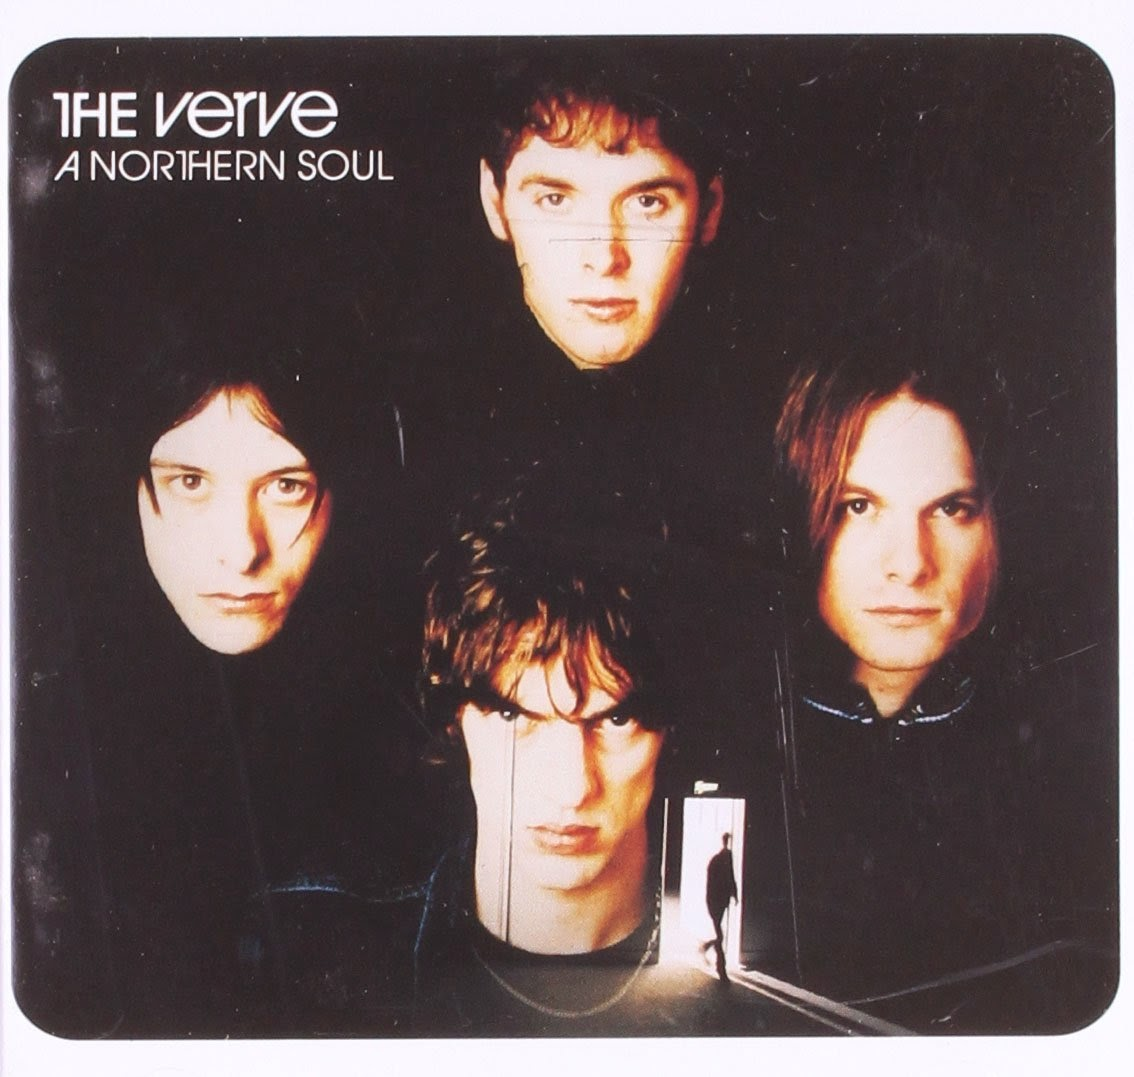 A Northern Soul by The Verve - Classic Album Reviews